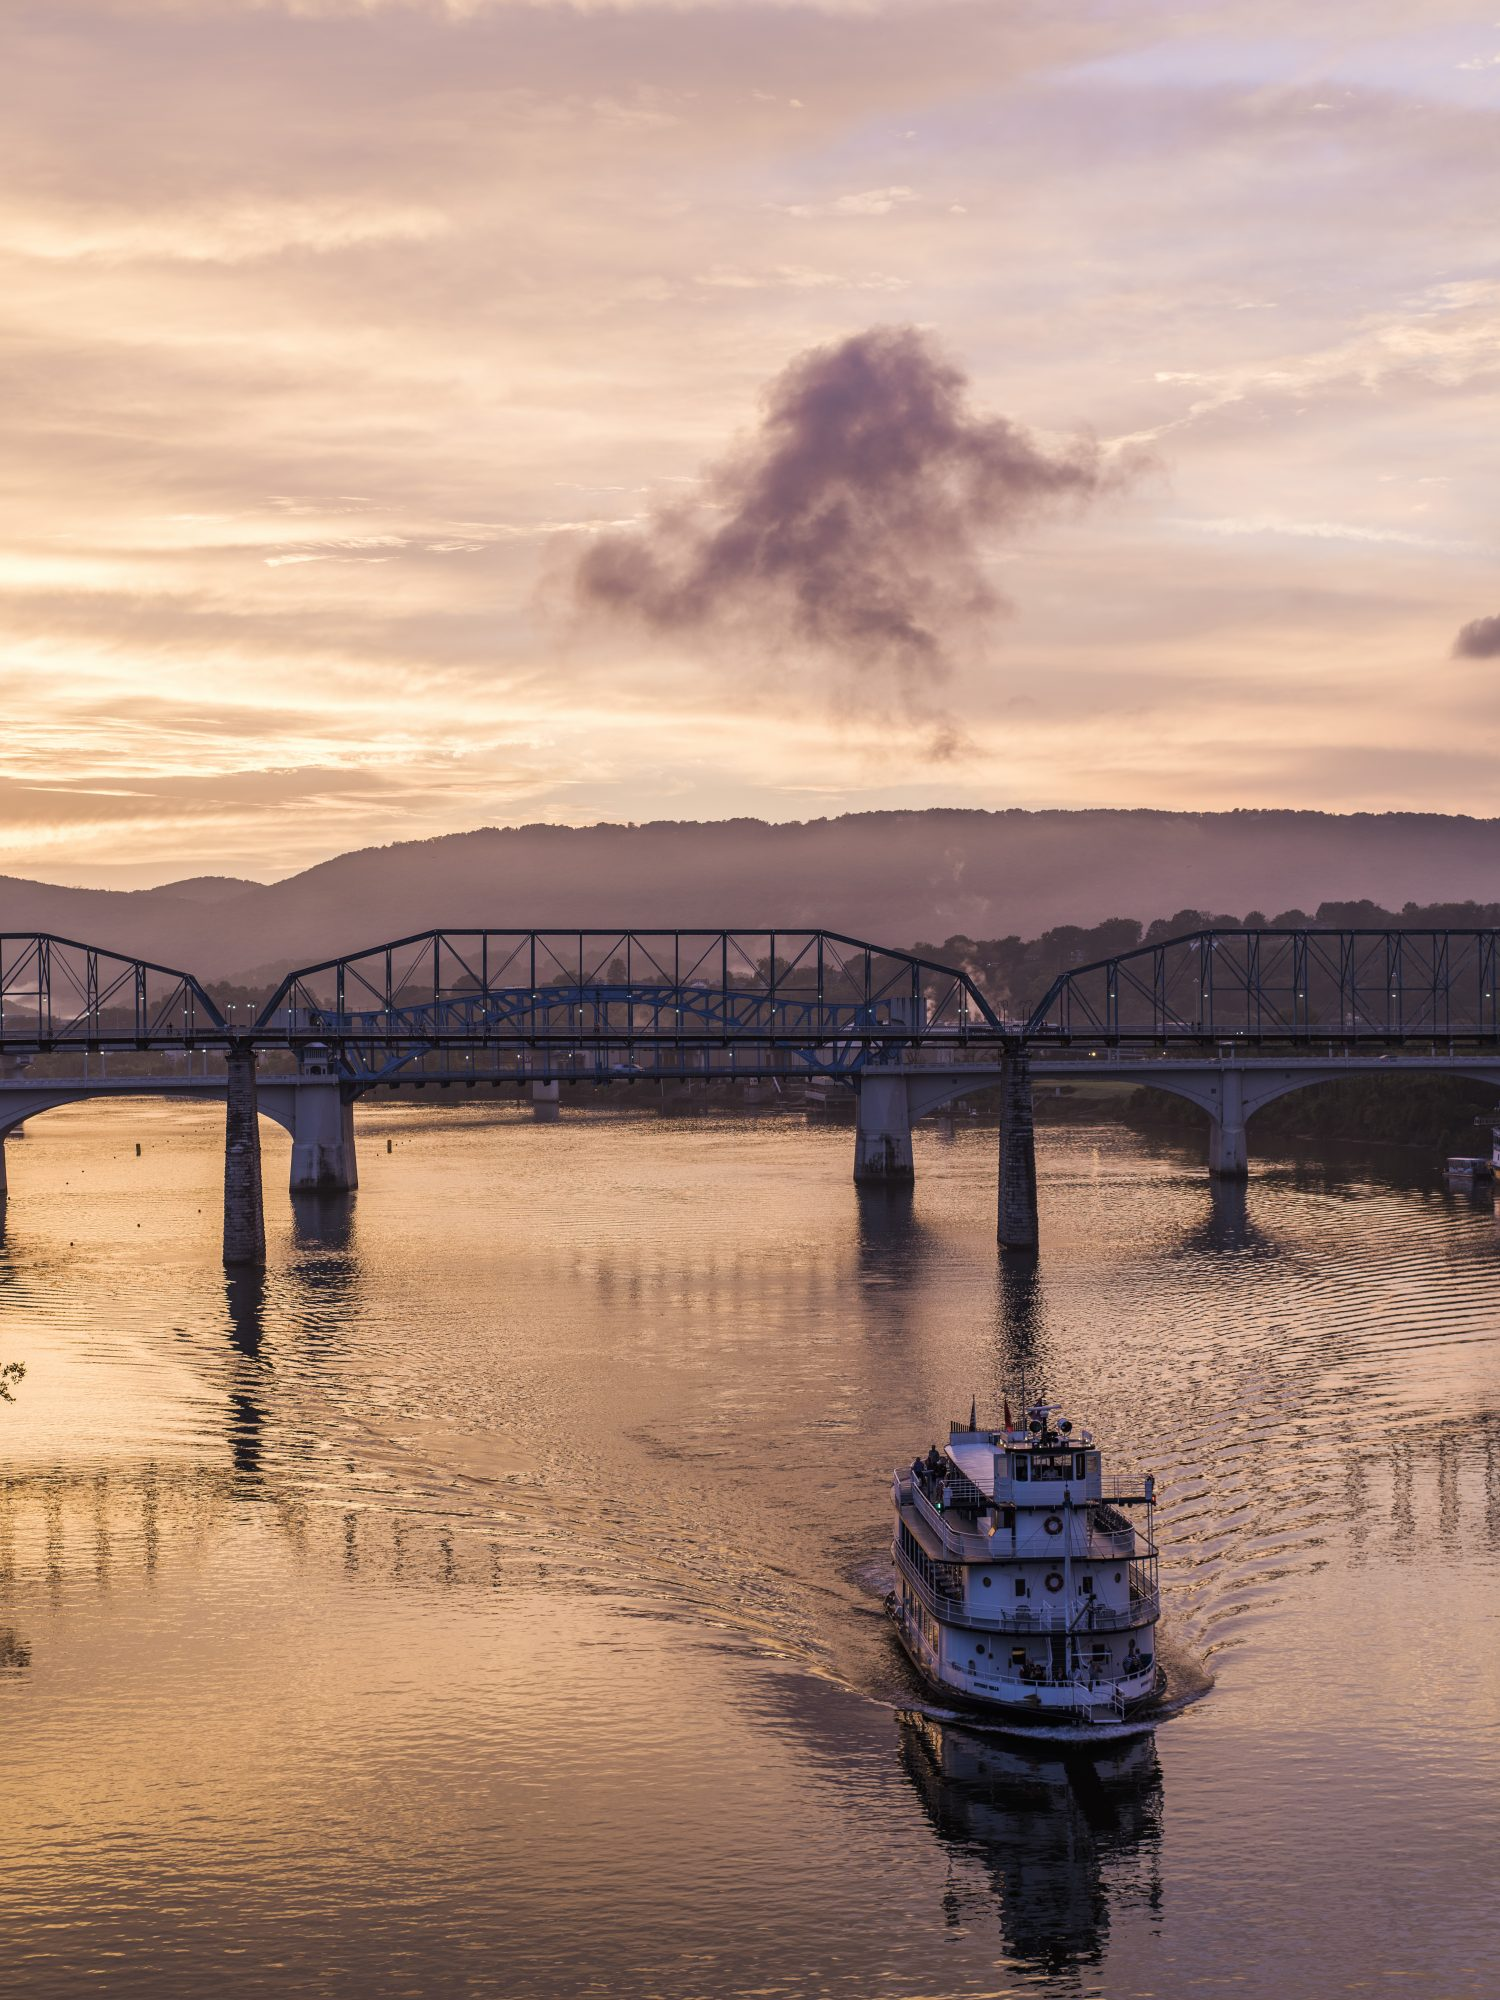 8. Chattanooga, Tennessee